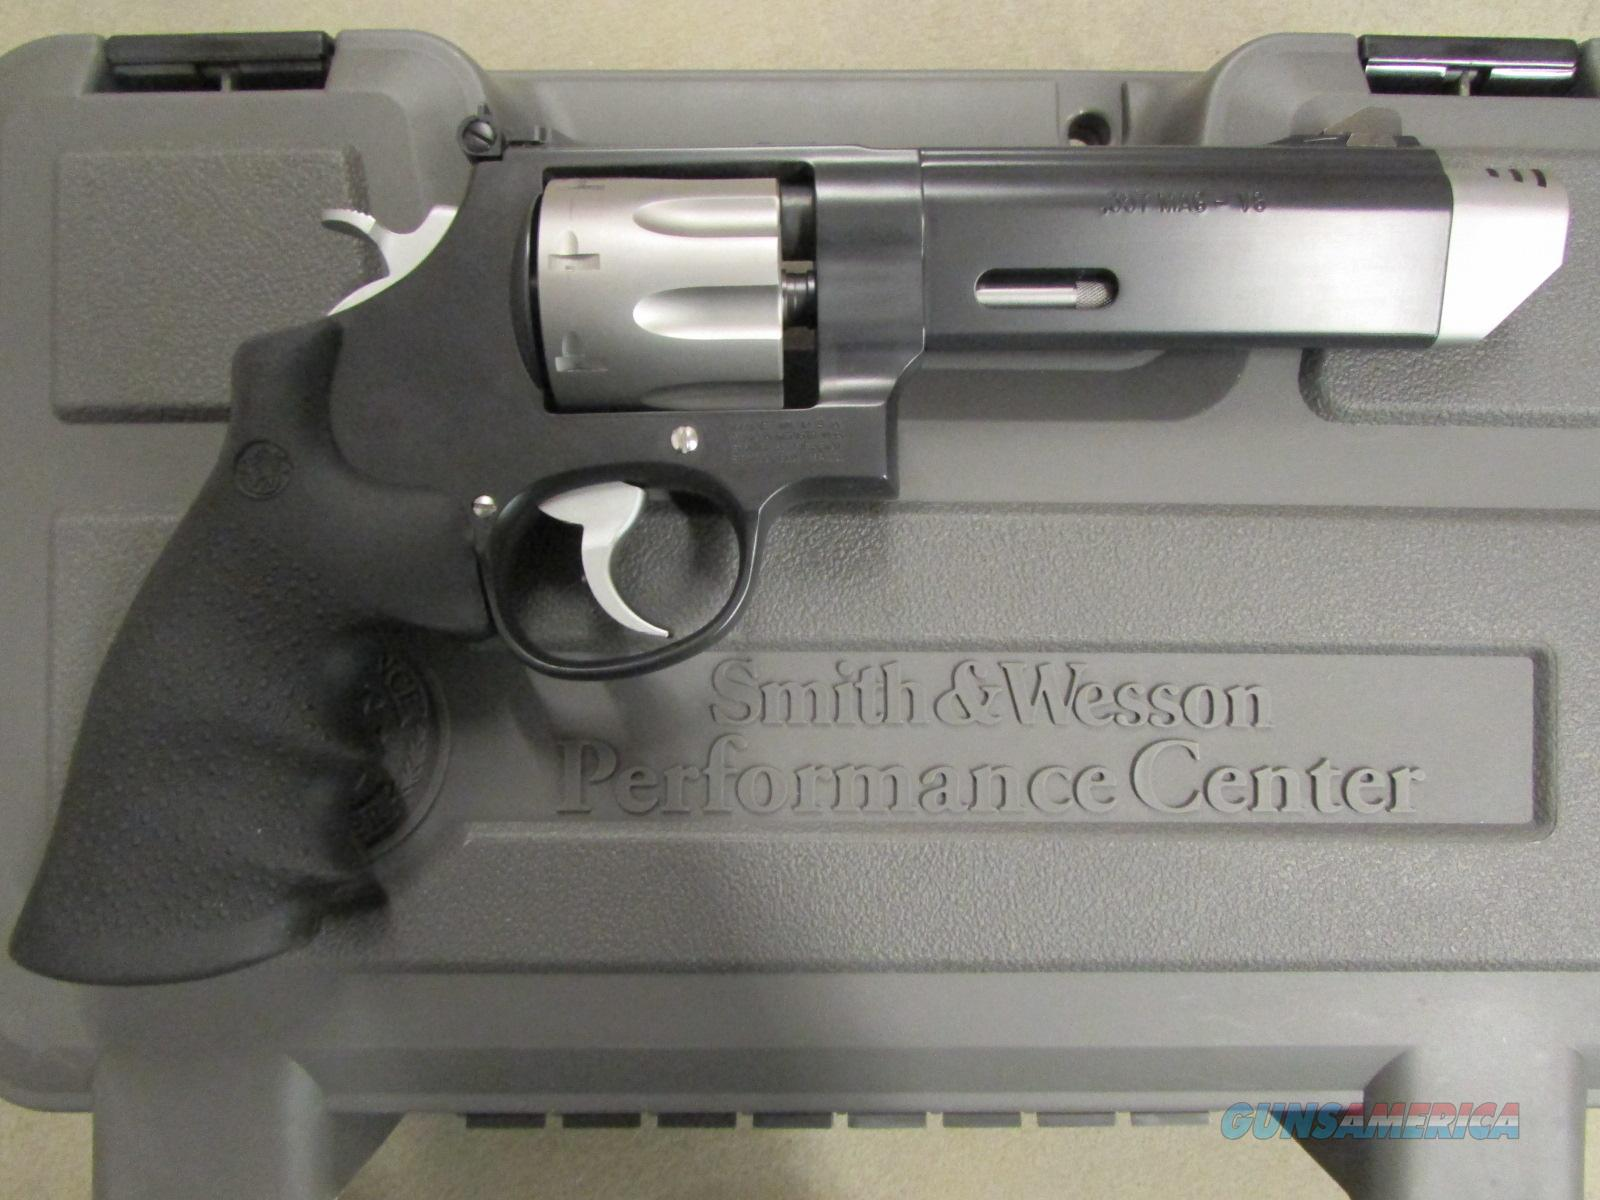 Smith & Wesson Performance Center Model 627 V-Comp .357 Mag.  Guns > Pistols > Smith & Wesson Revolvers > Performance Center